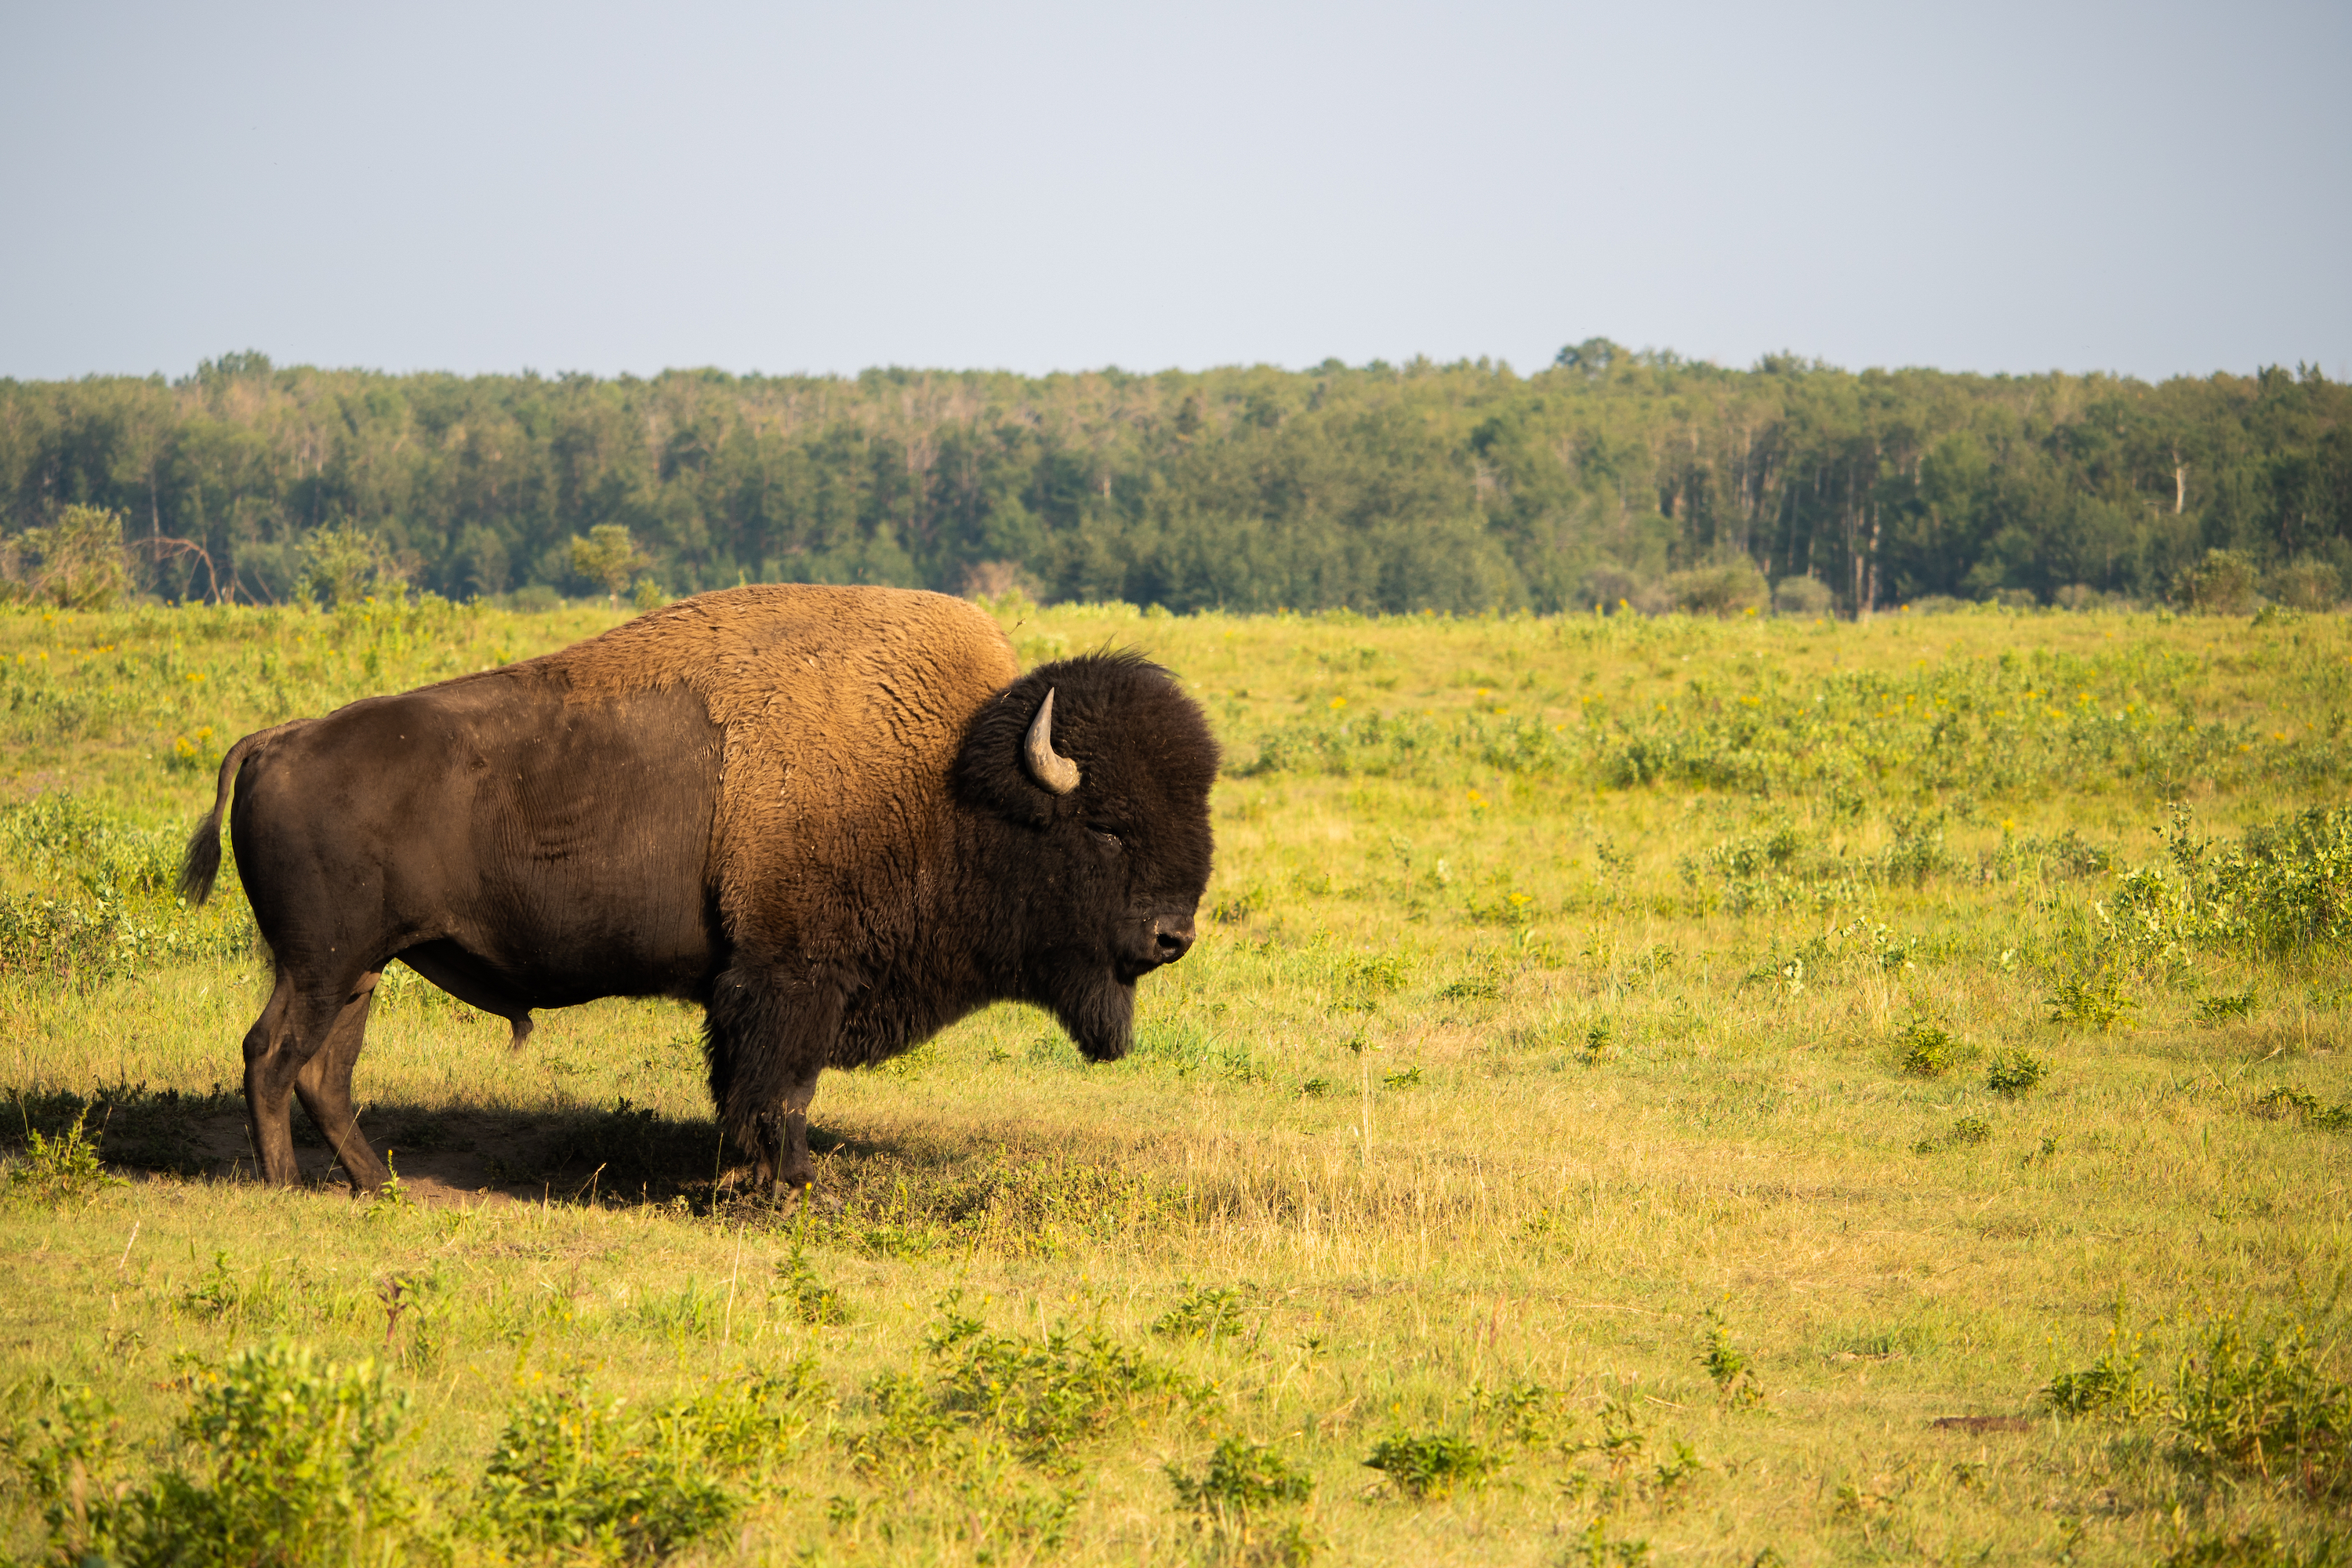 parc national de Wood Buffalo - Bison - Canada